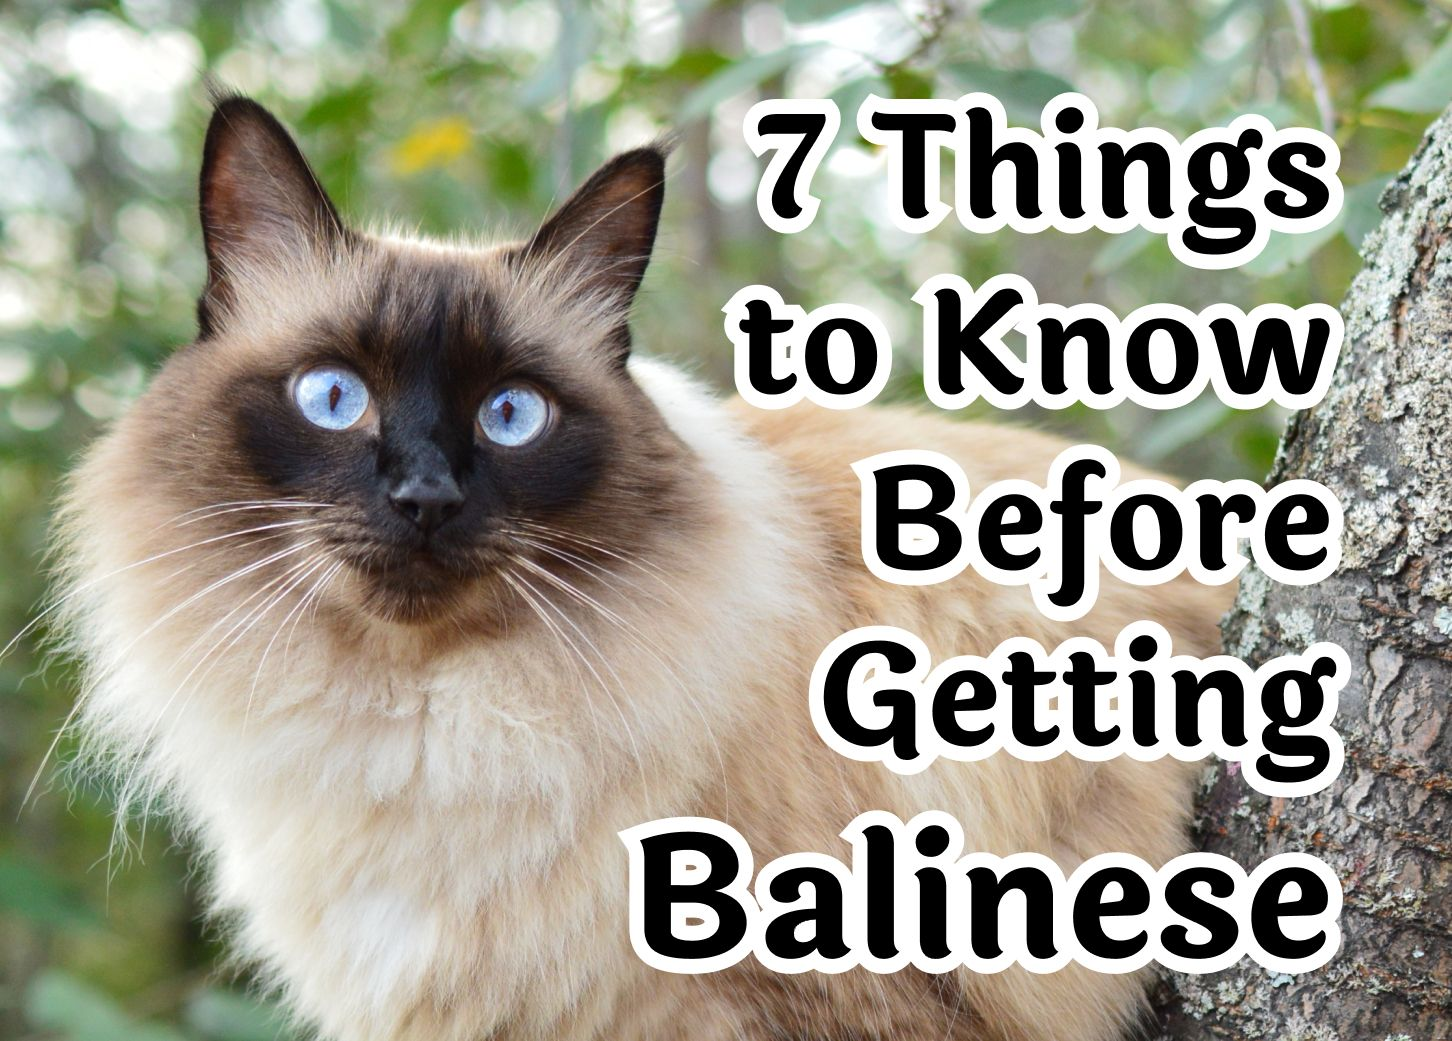 7 Things to Consider Before Getting a Balinese Cat